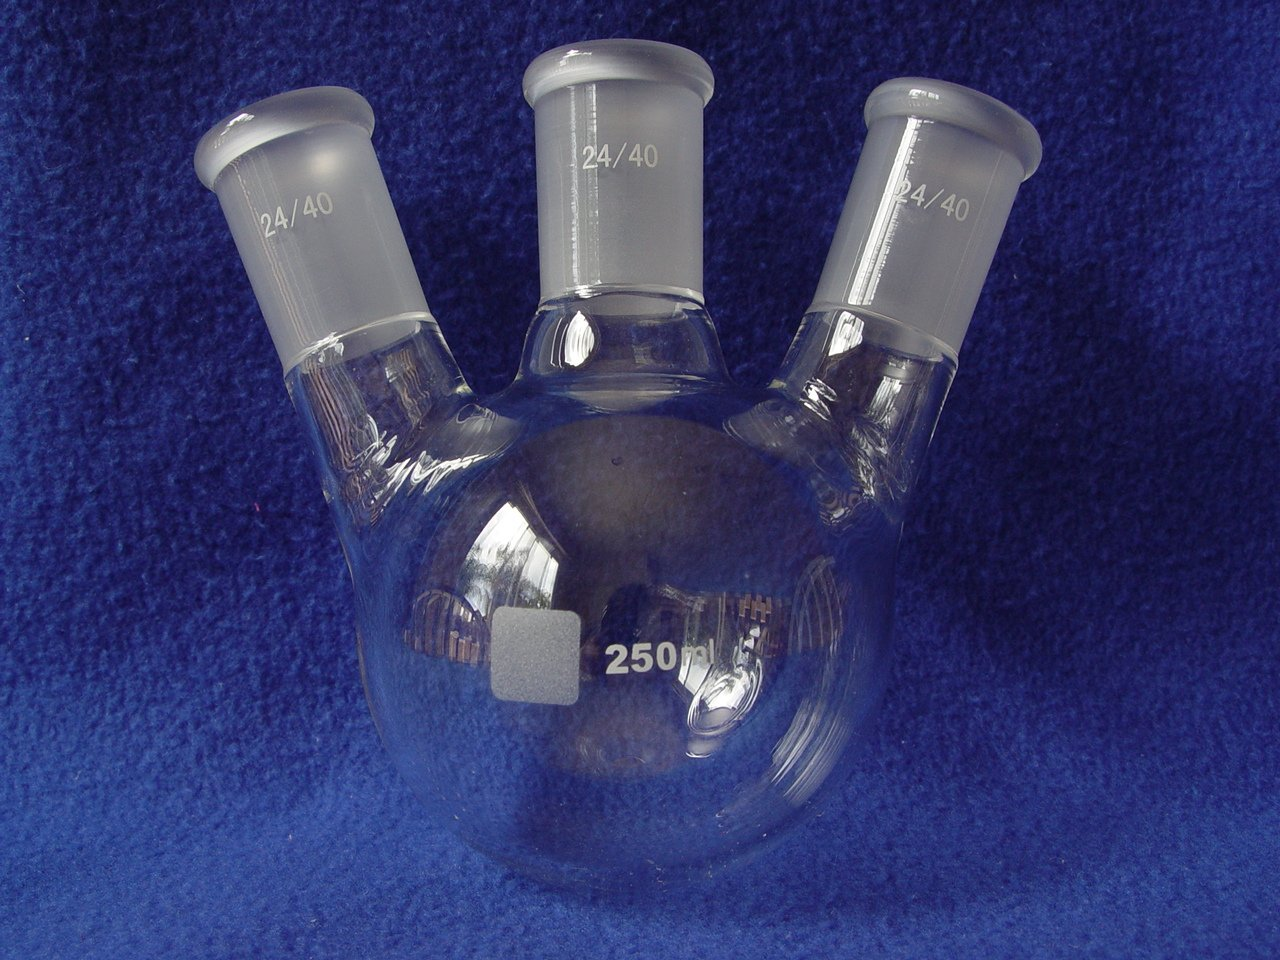 3-NECK ROUND BOTTOM FLASK 24/40 250ML angeled high quality heavy duty